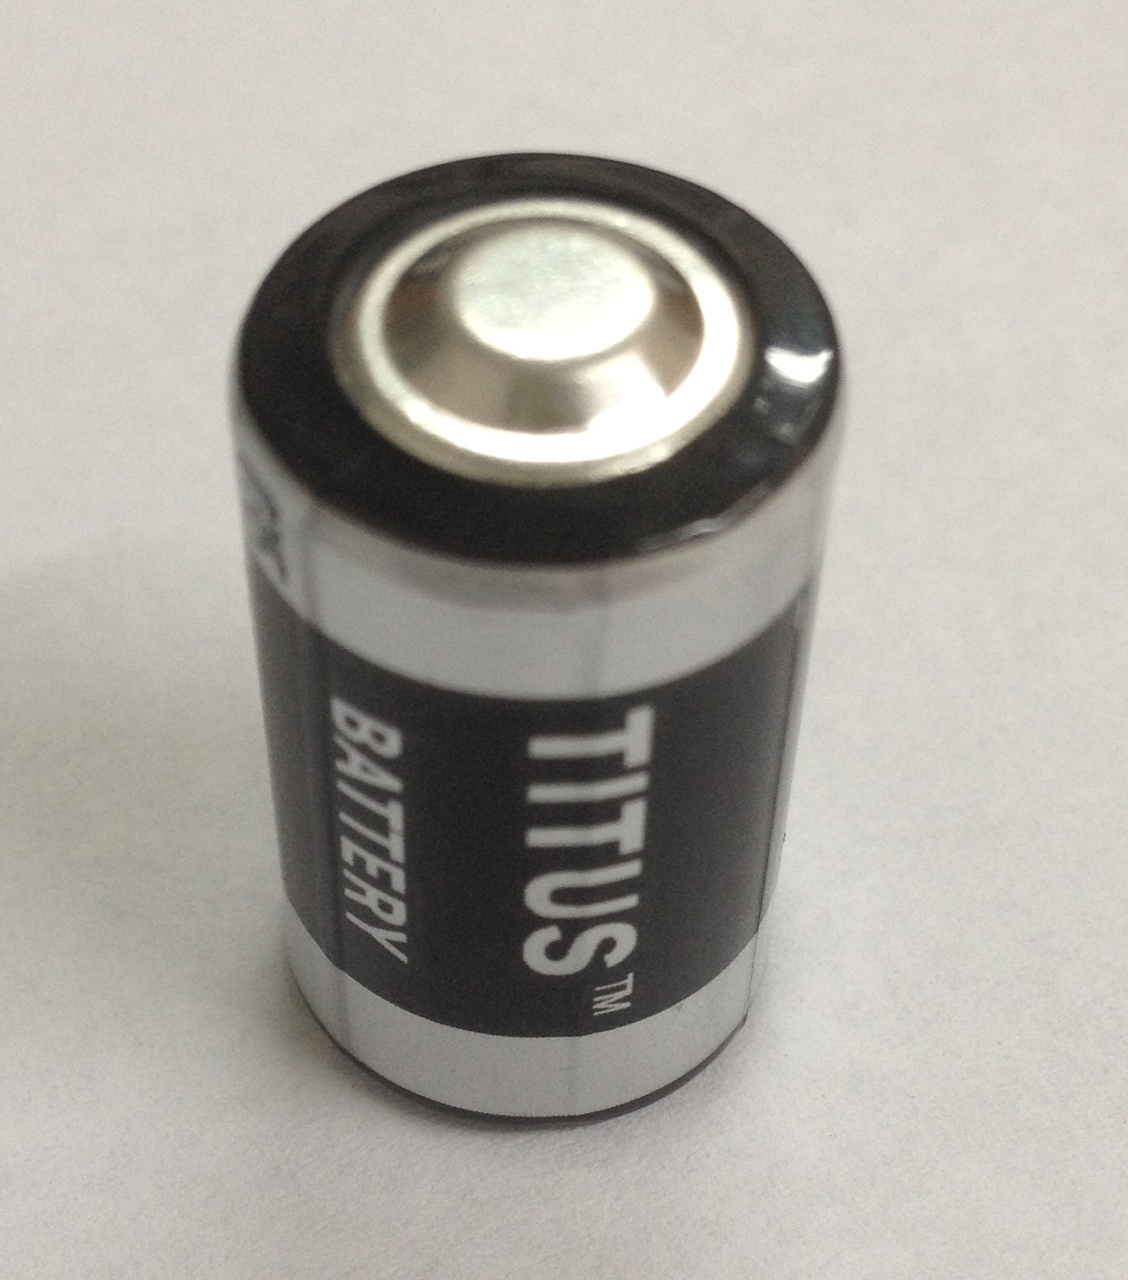 Titus 1/2 AA Size 3.6V ER14250T Lithium Battery With Solder Tabs - 10 Pack + Free Shipping!